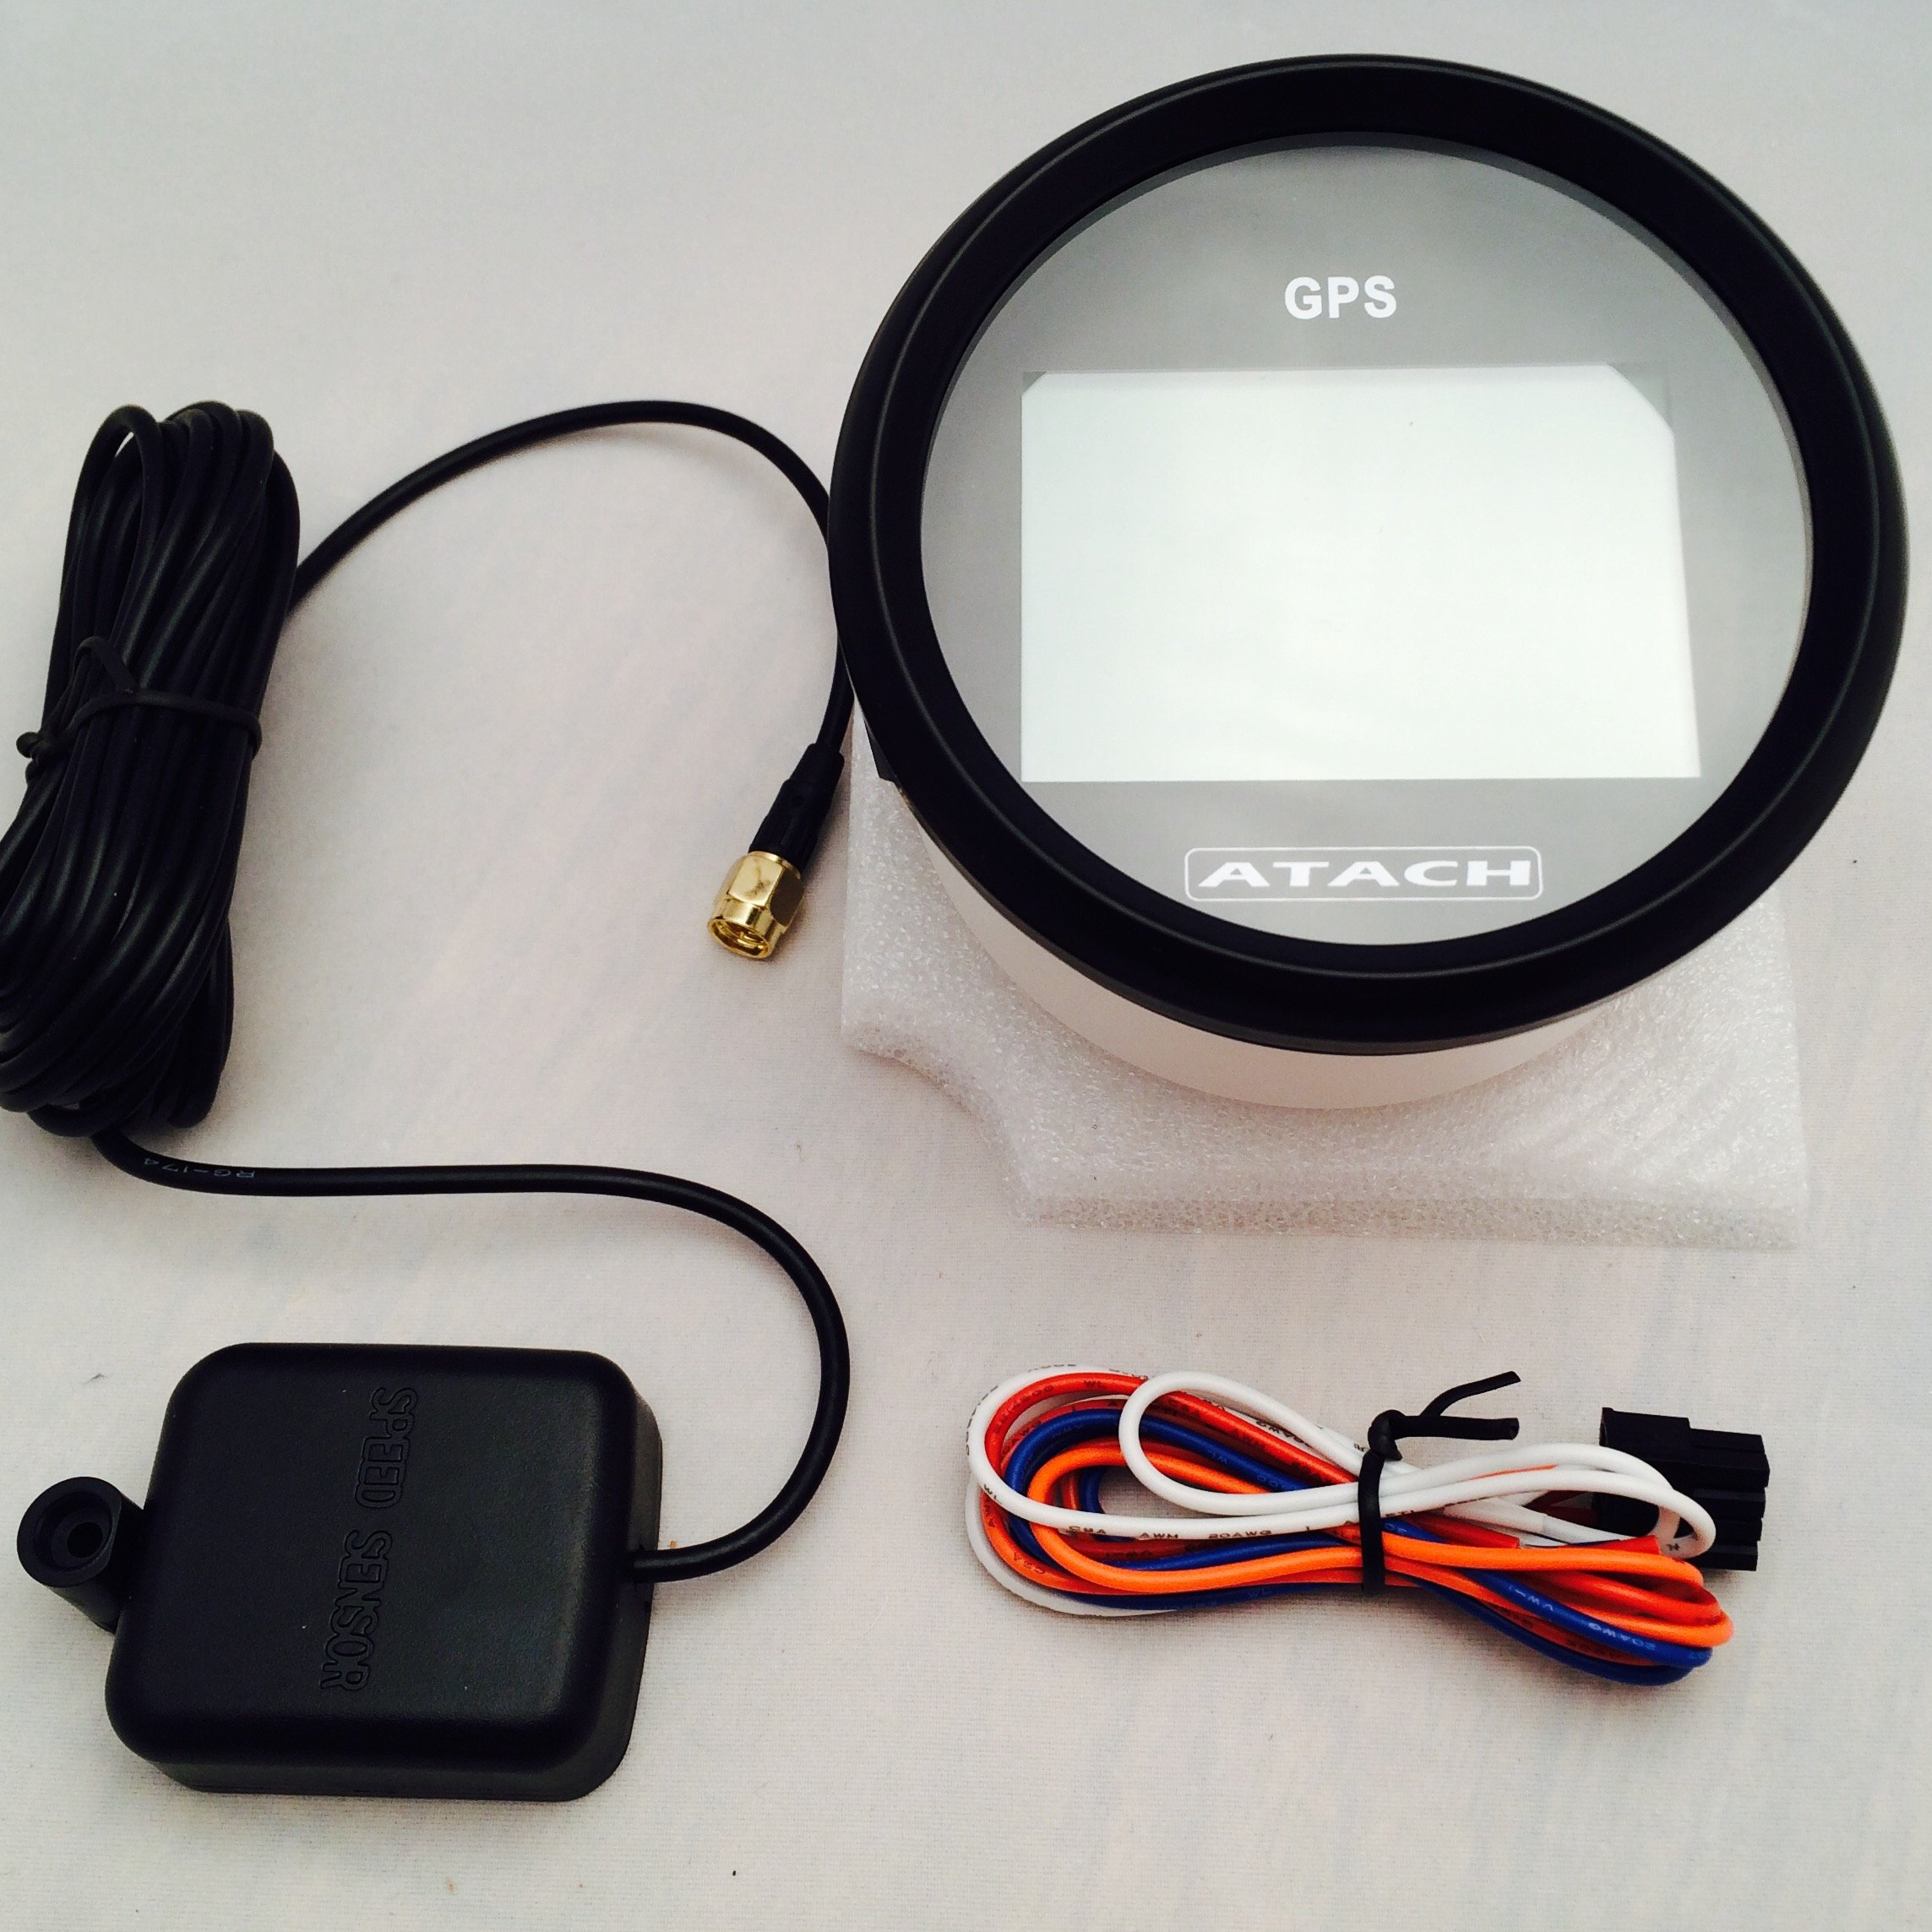 AndyTach 3-3/8'' ATACH DIGITAL GPS speedometer with high speed recall (BLACK/BLACK BEZEL) by AndyTach (Image #2)